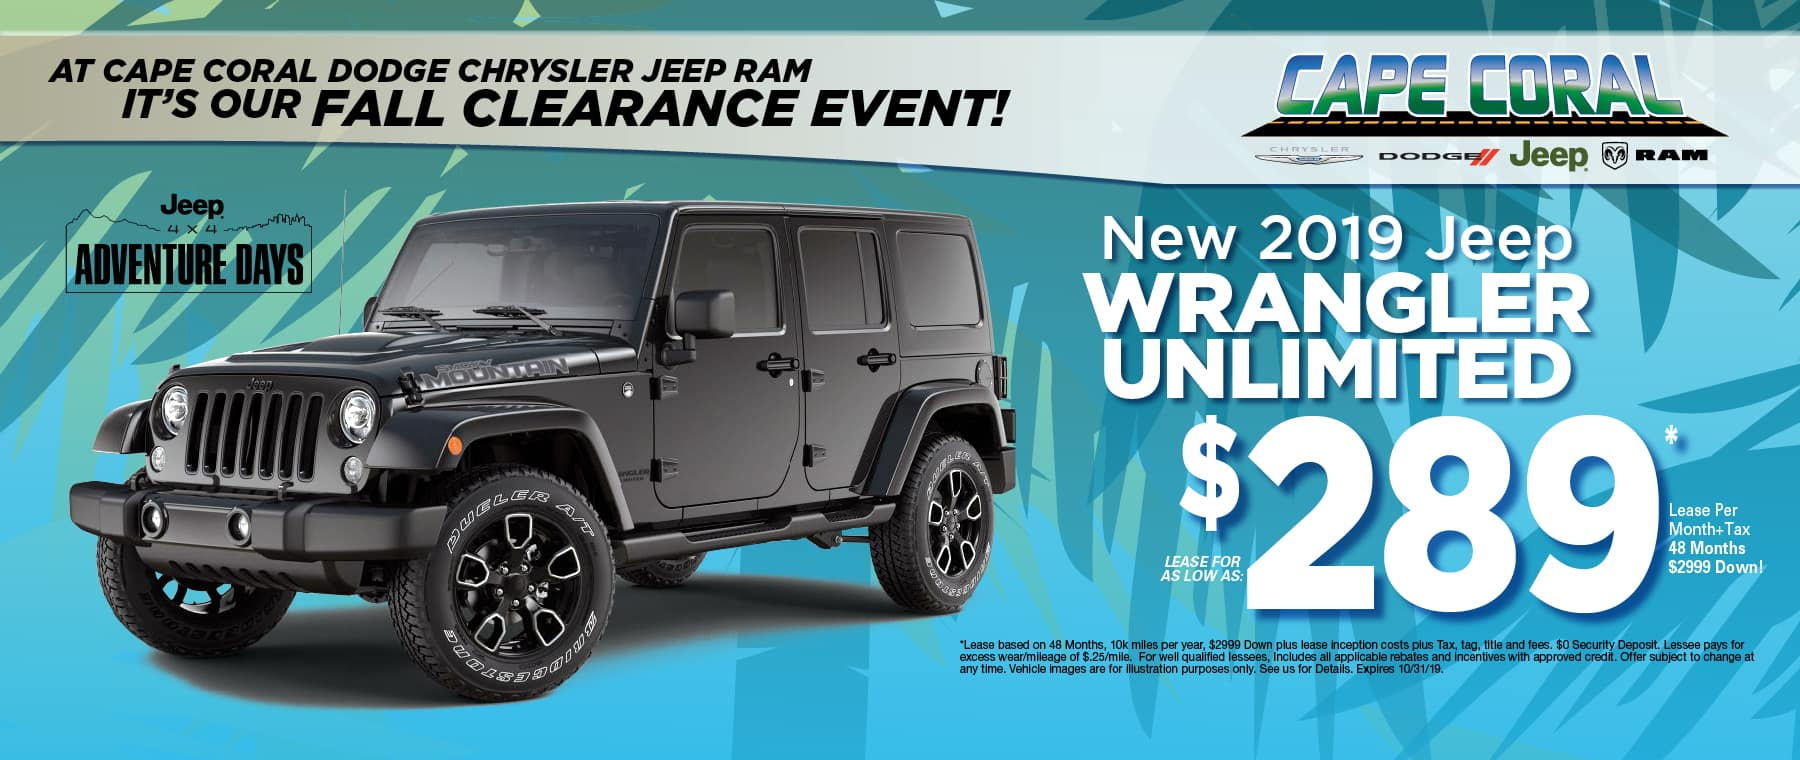 New 2019 Jeep Wrangler Unlimited!